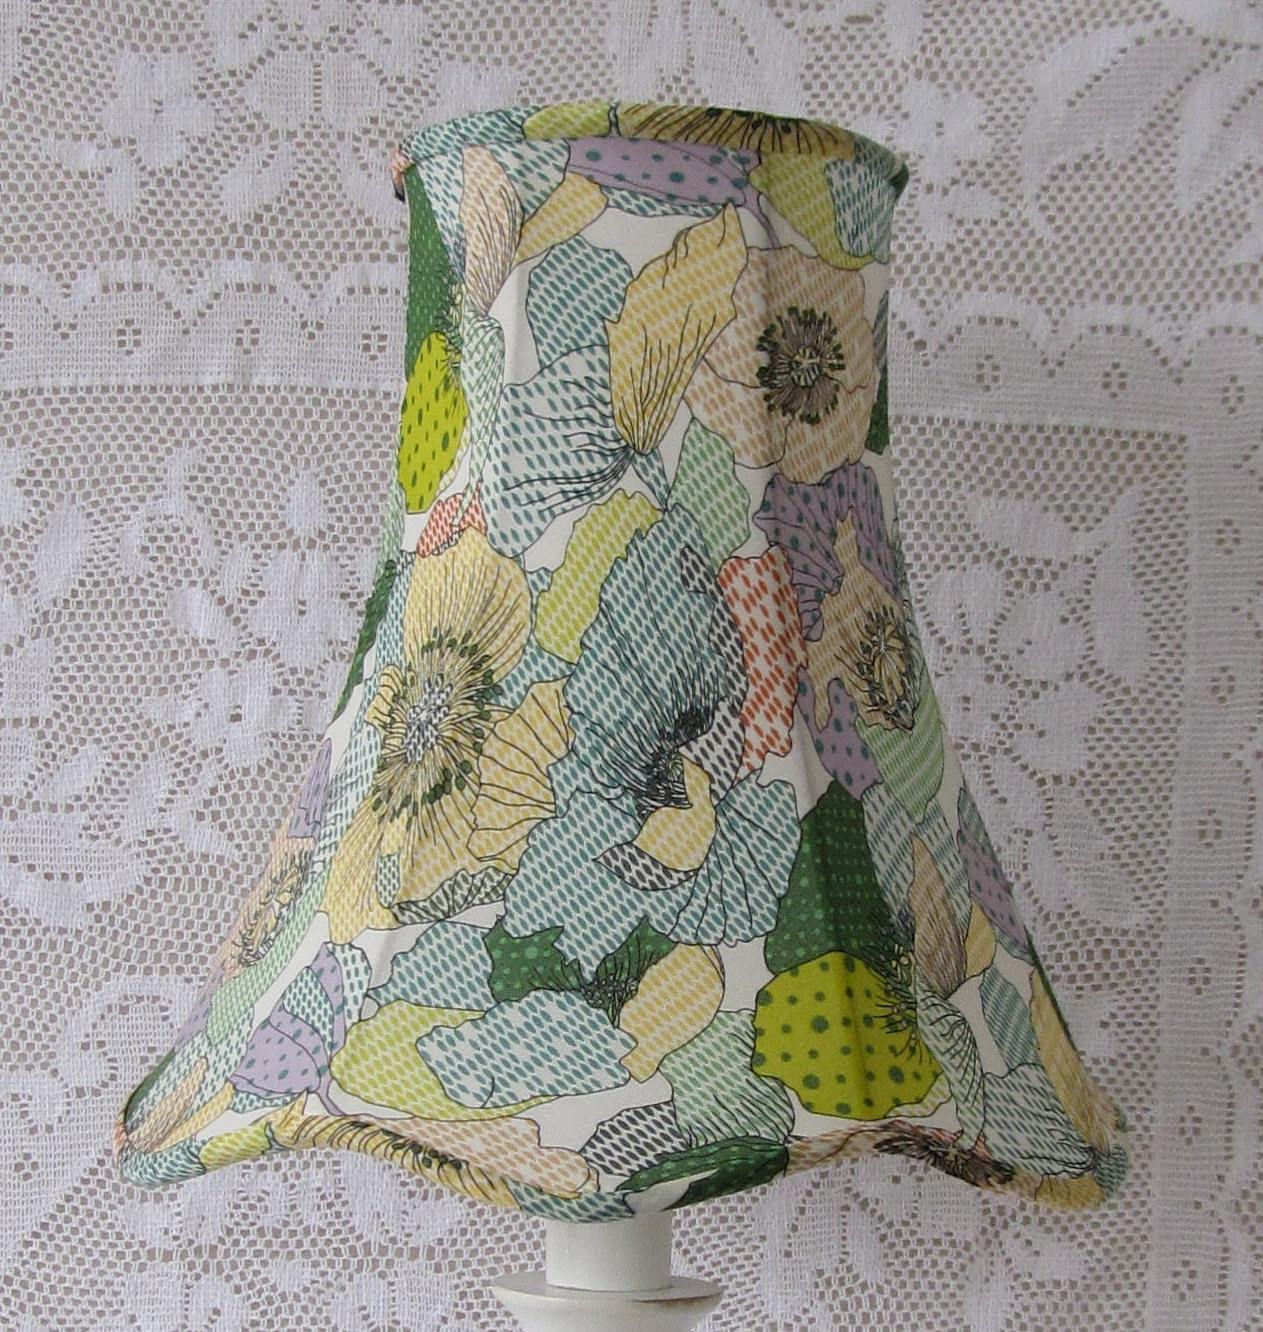 Small things simple pleasures how to recover a lampshade tutorial how to recover a lampshade tutorial greentooth Choice Image